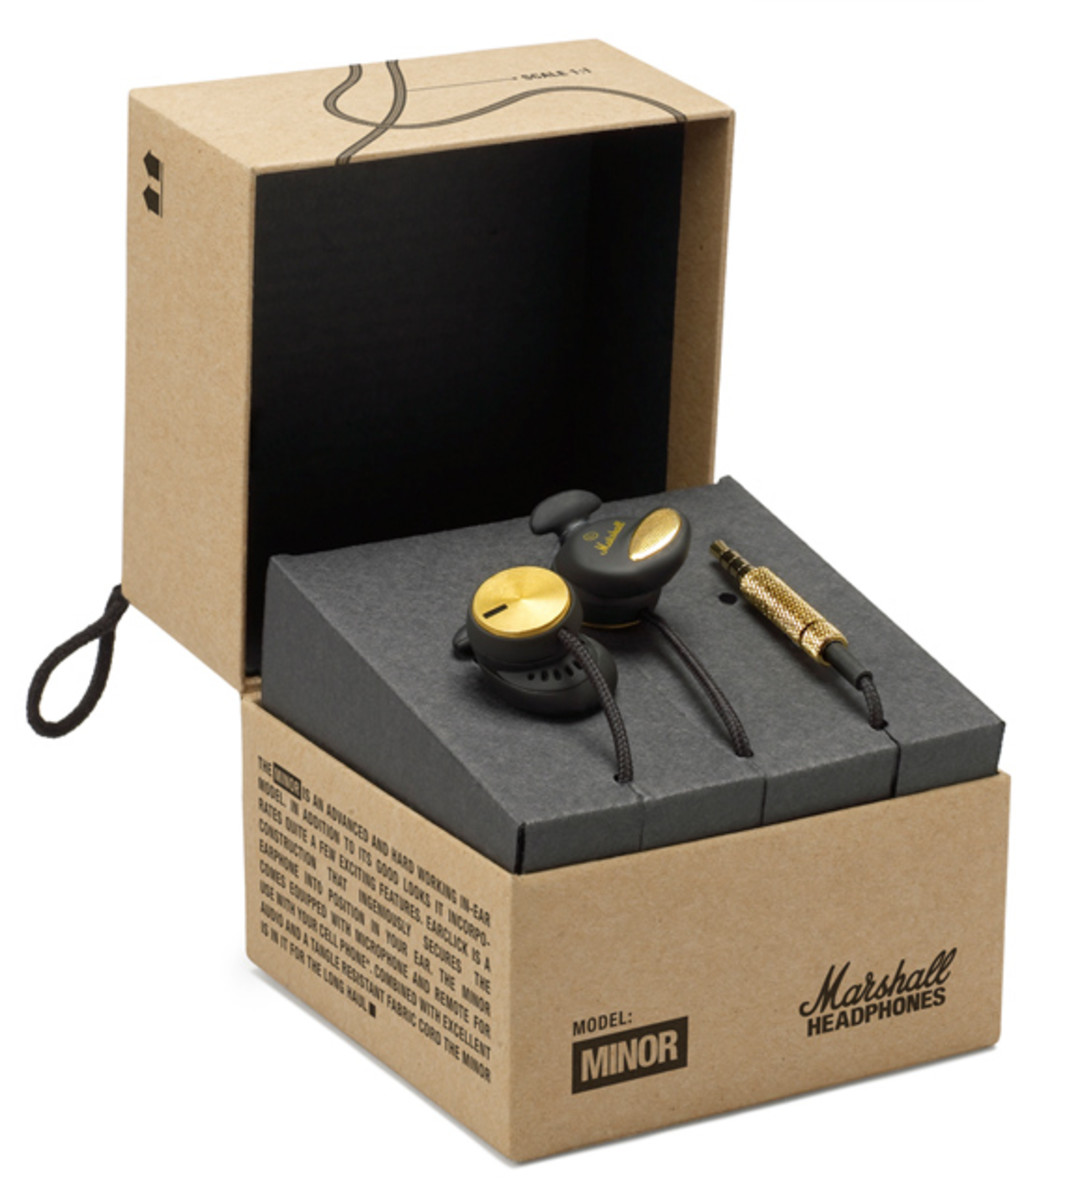 marshall-headphone-the-minor-04